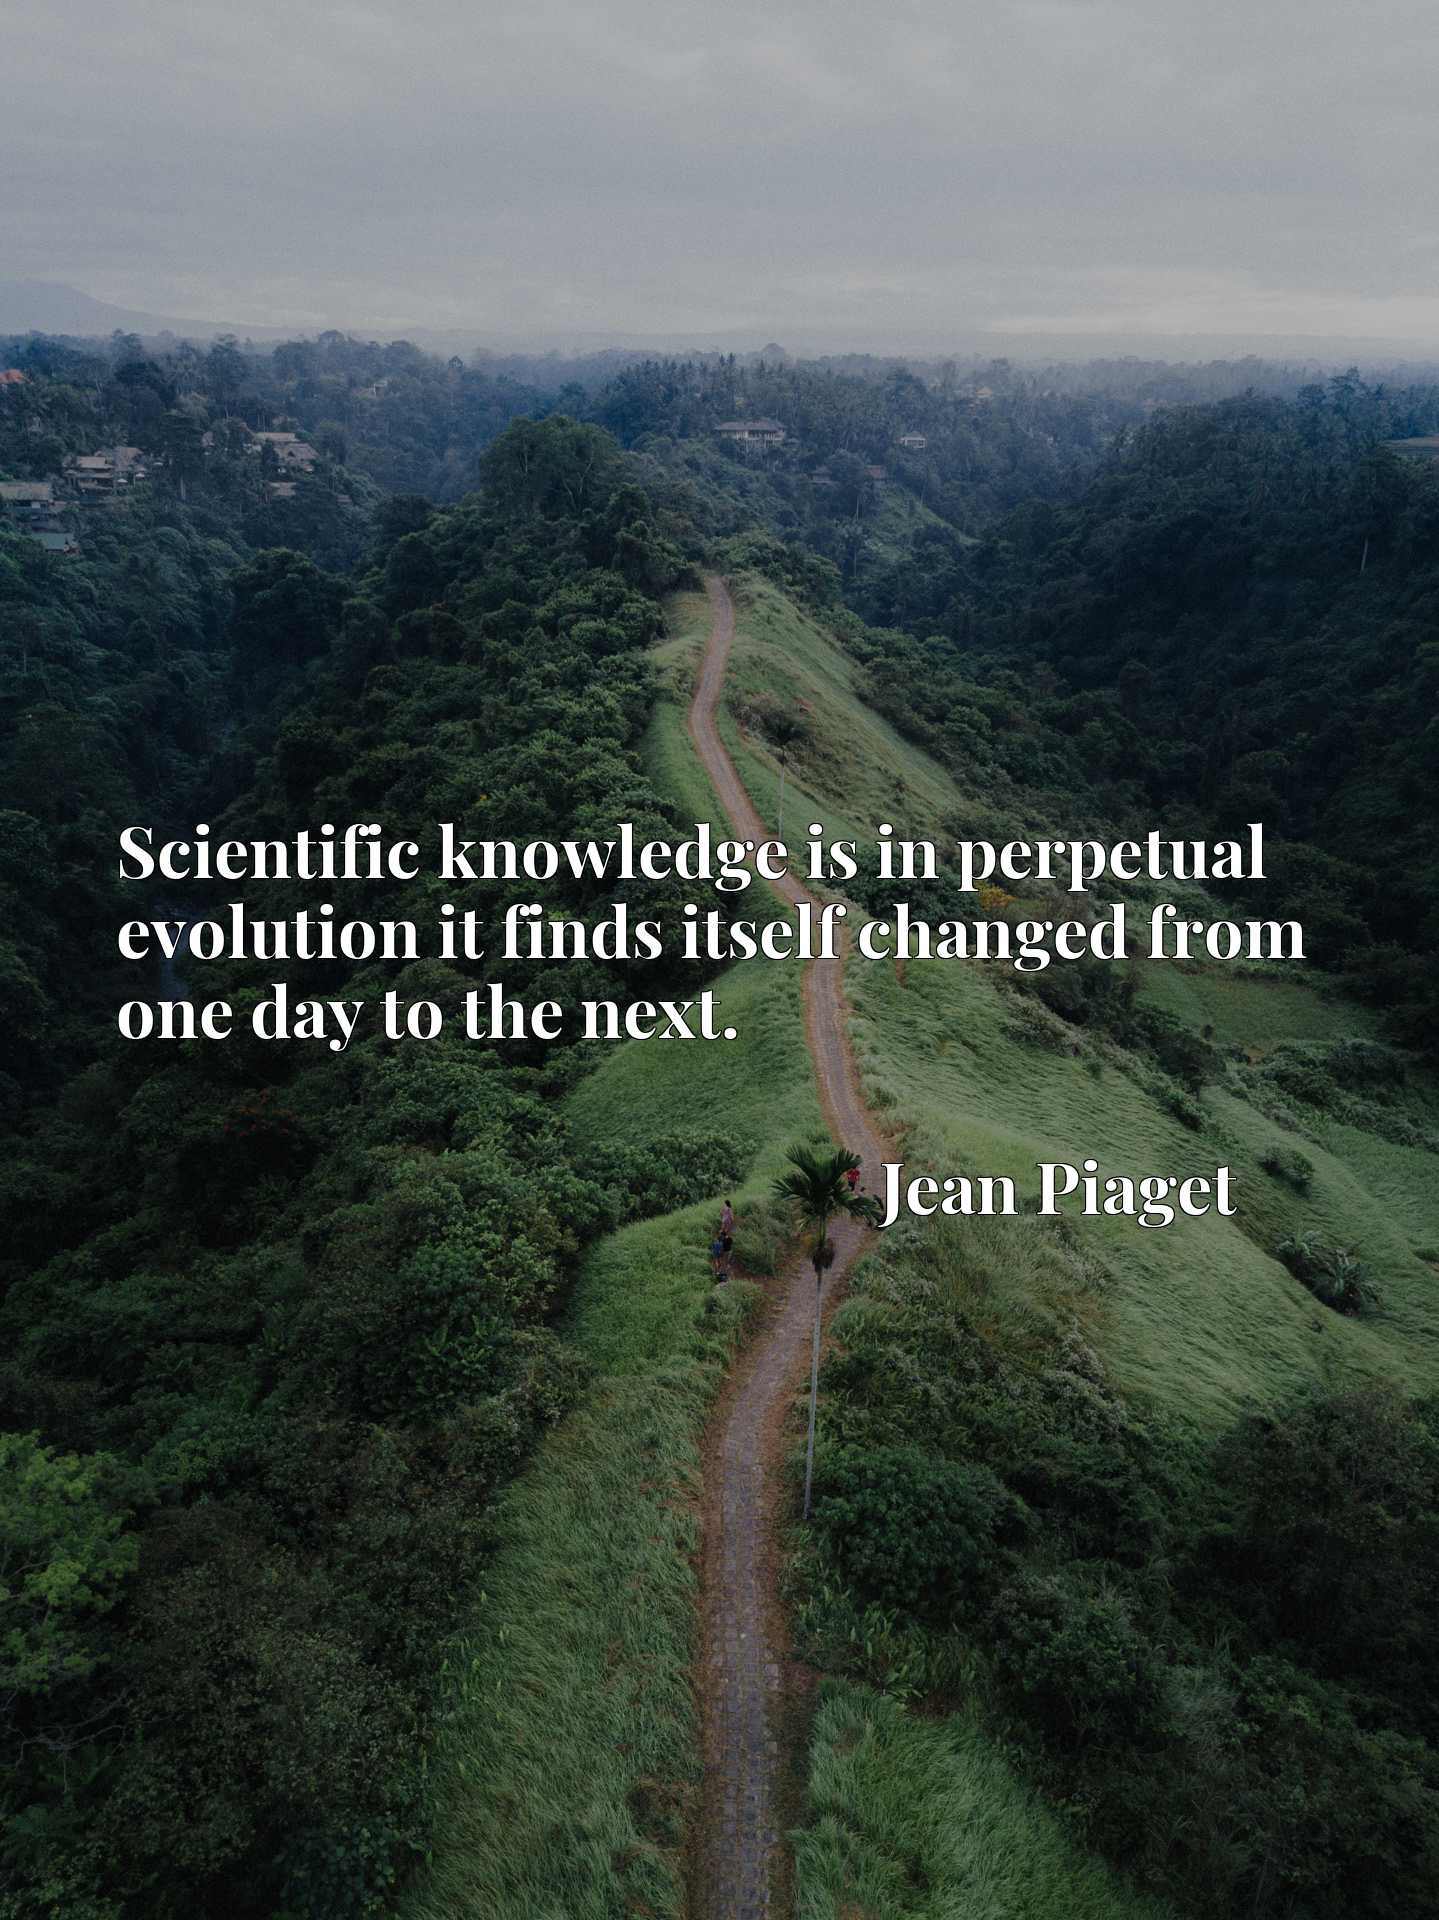 Quote Picture :Scientific knowledge is in perpetual evolution it finds itself changed from one day to the next.